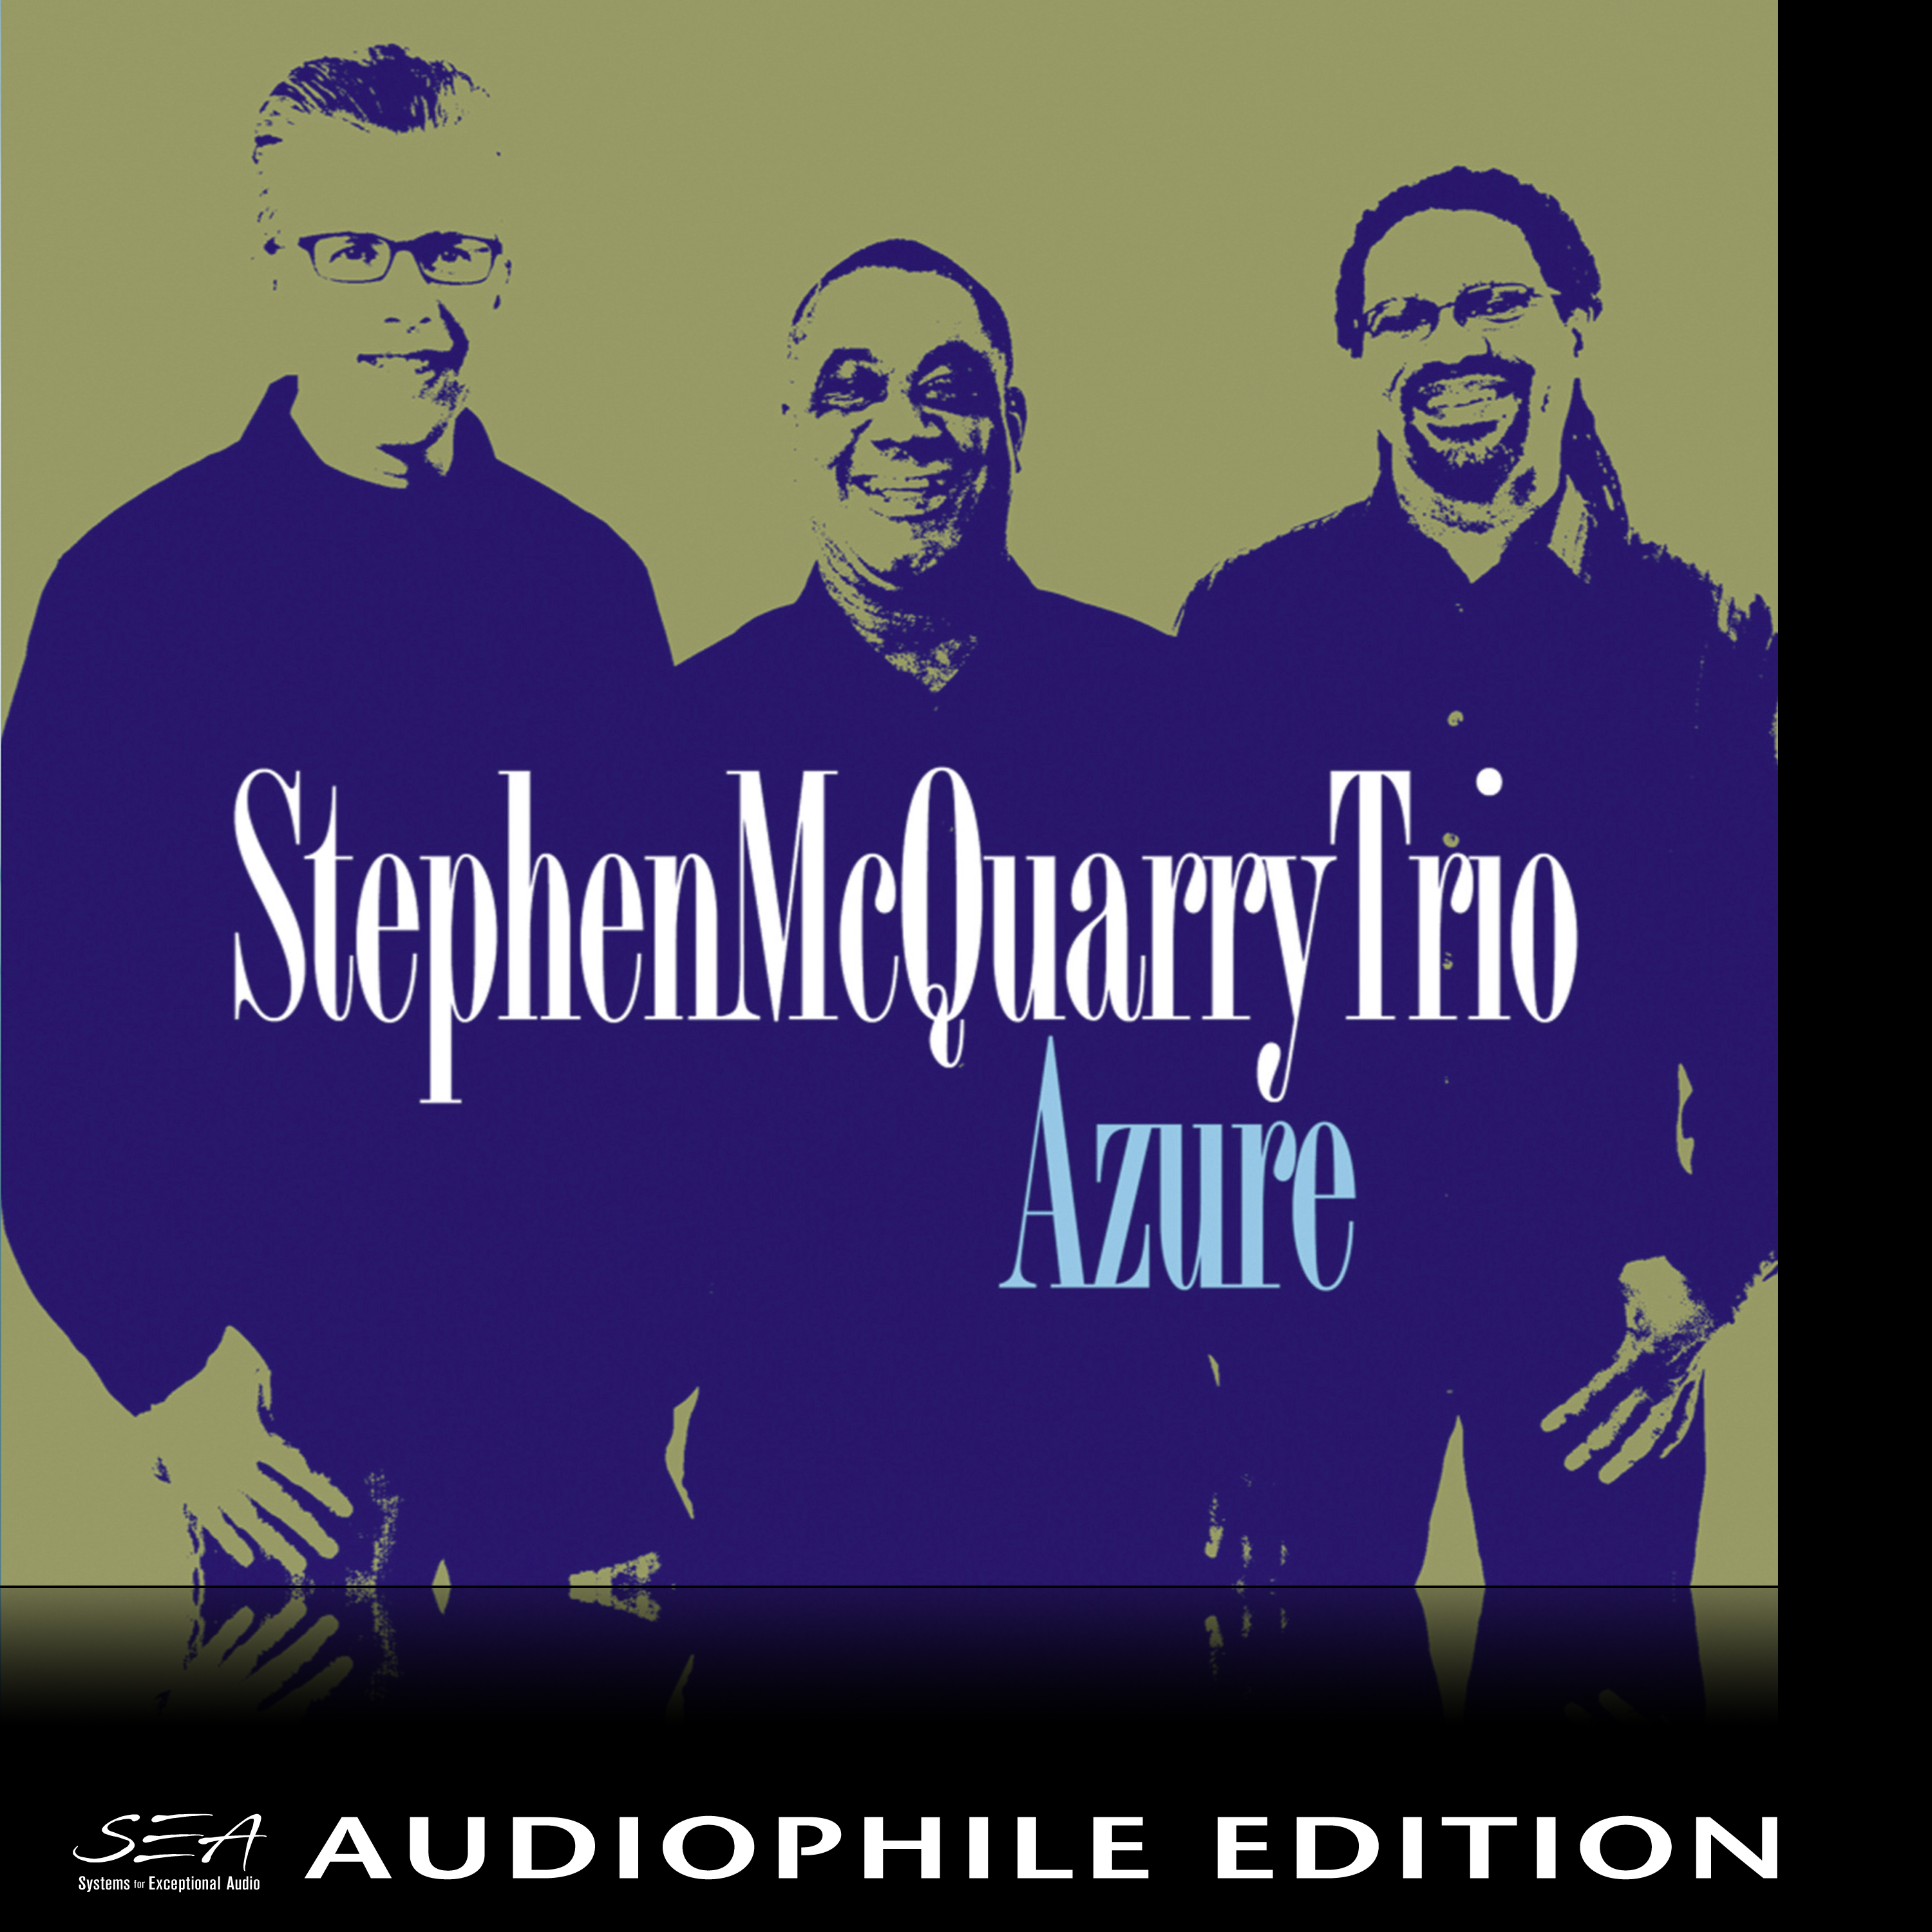 Stephen McQuarry Trio - Azure - Cover Image